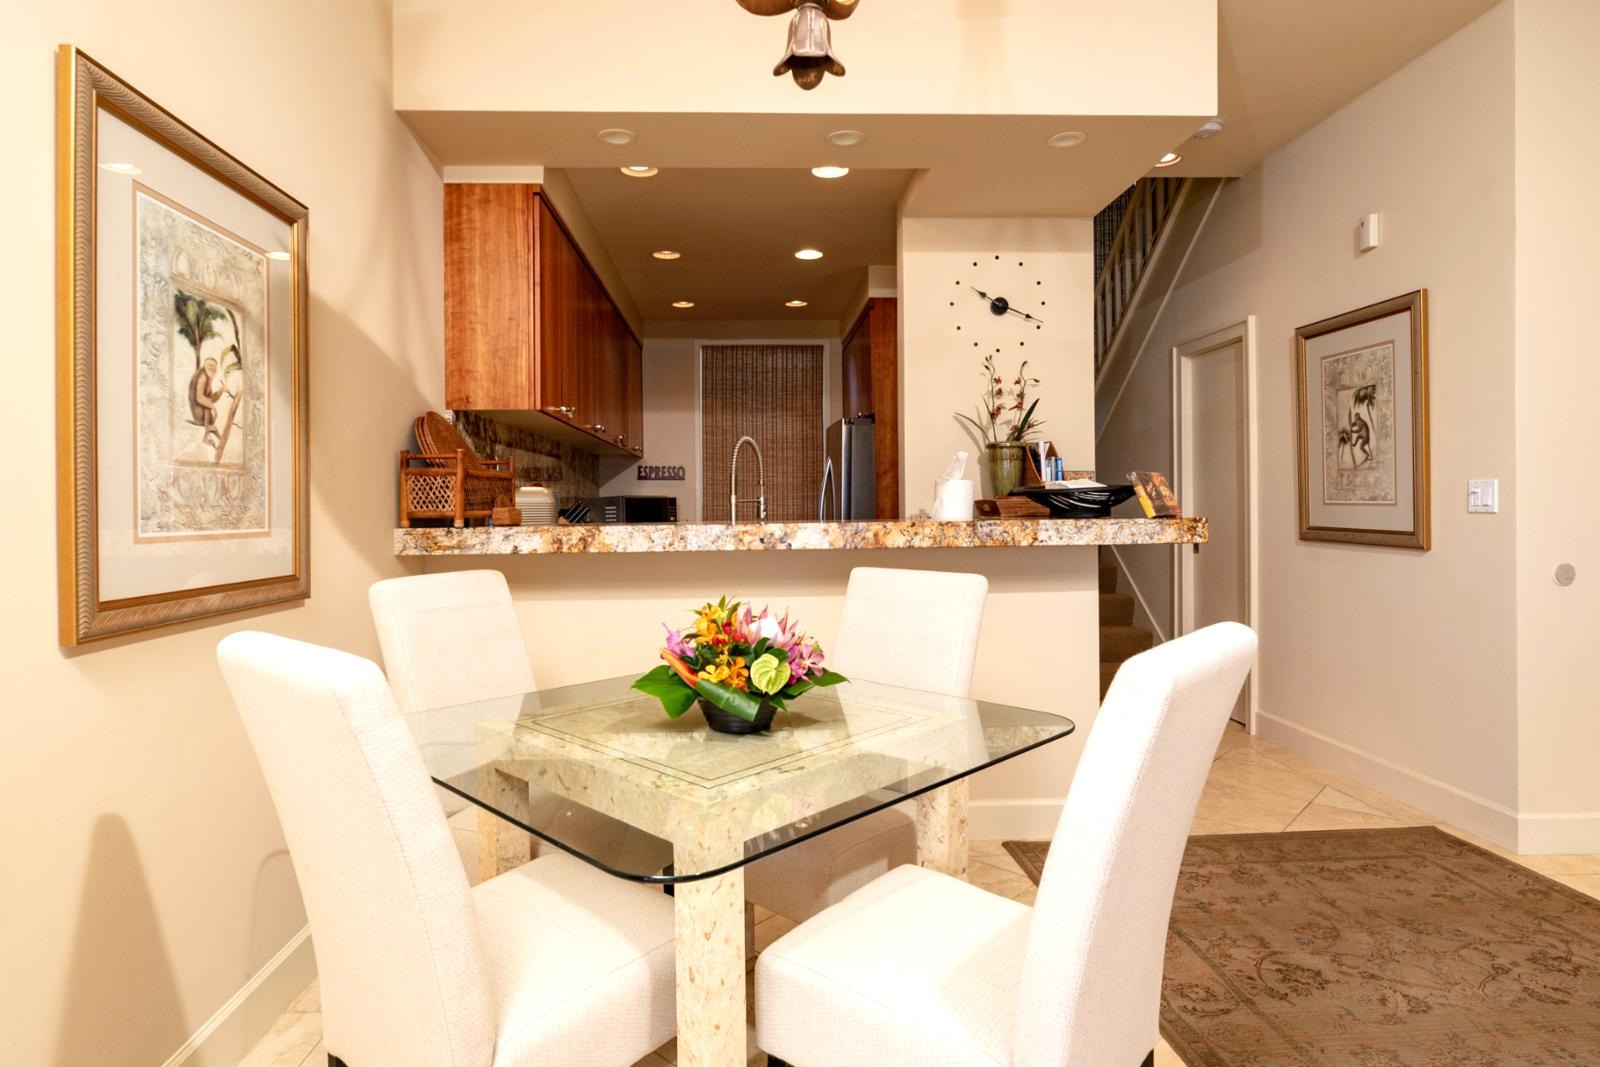 Formal dining for (4)